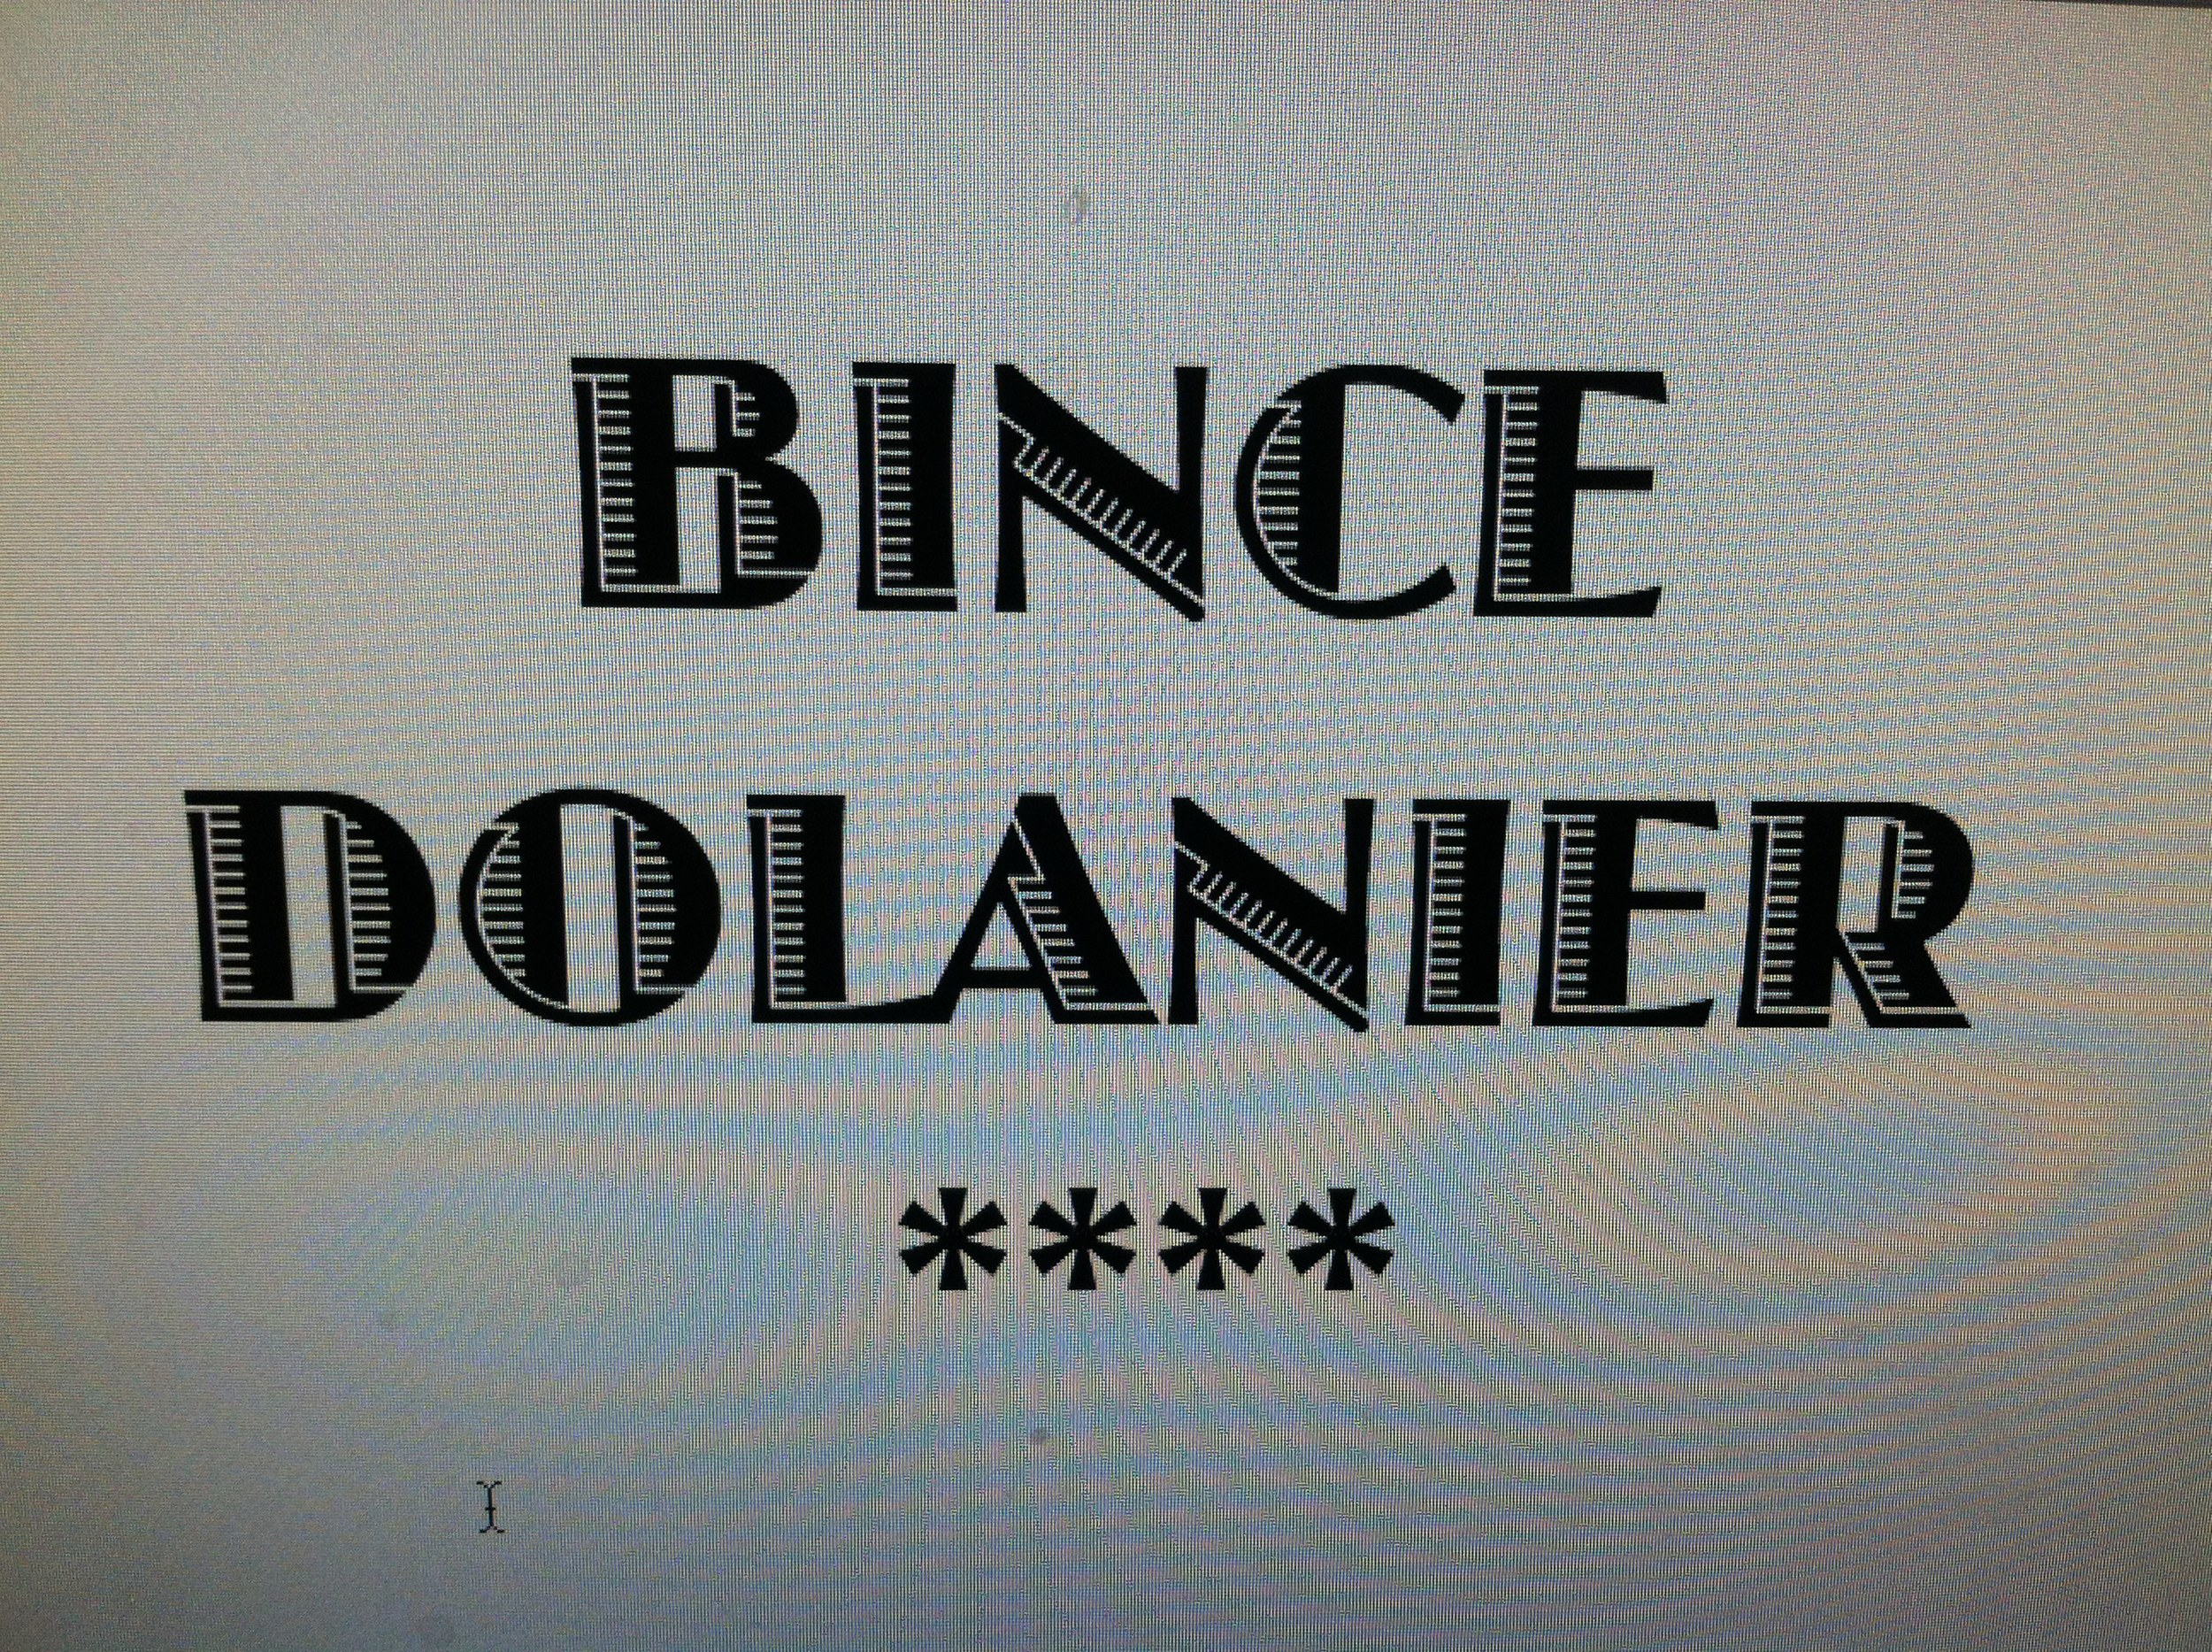 Just an hour after hearing that his restaurant had been awarded a fourth Michelin star, Bince changed his logo